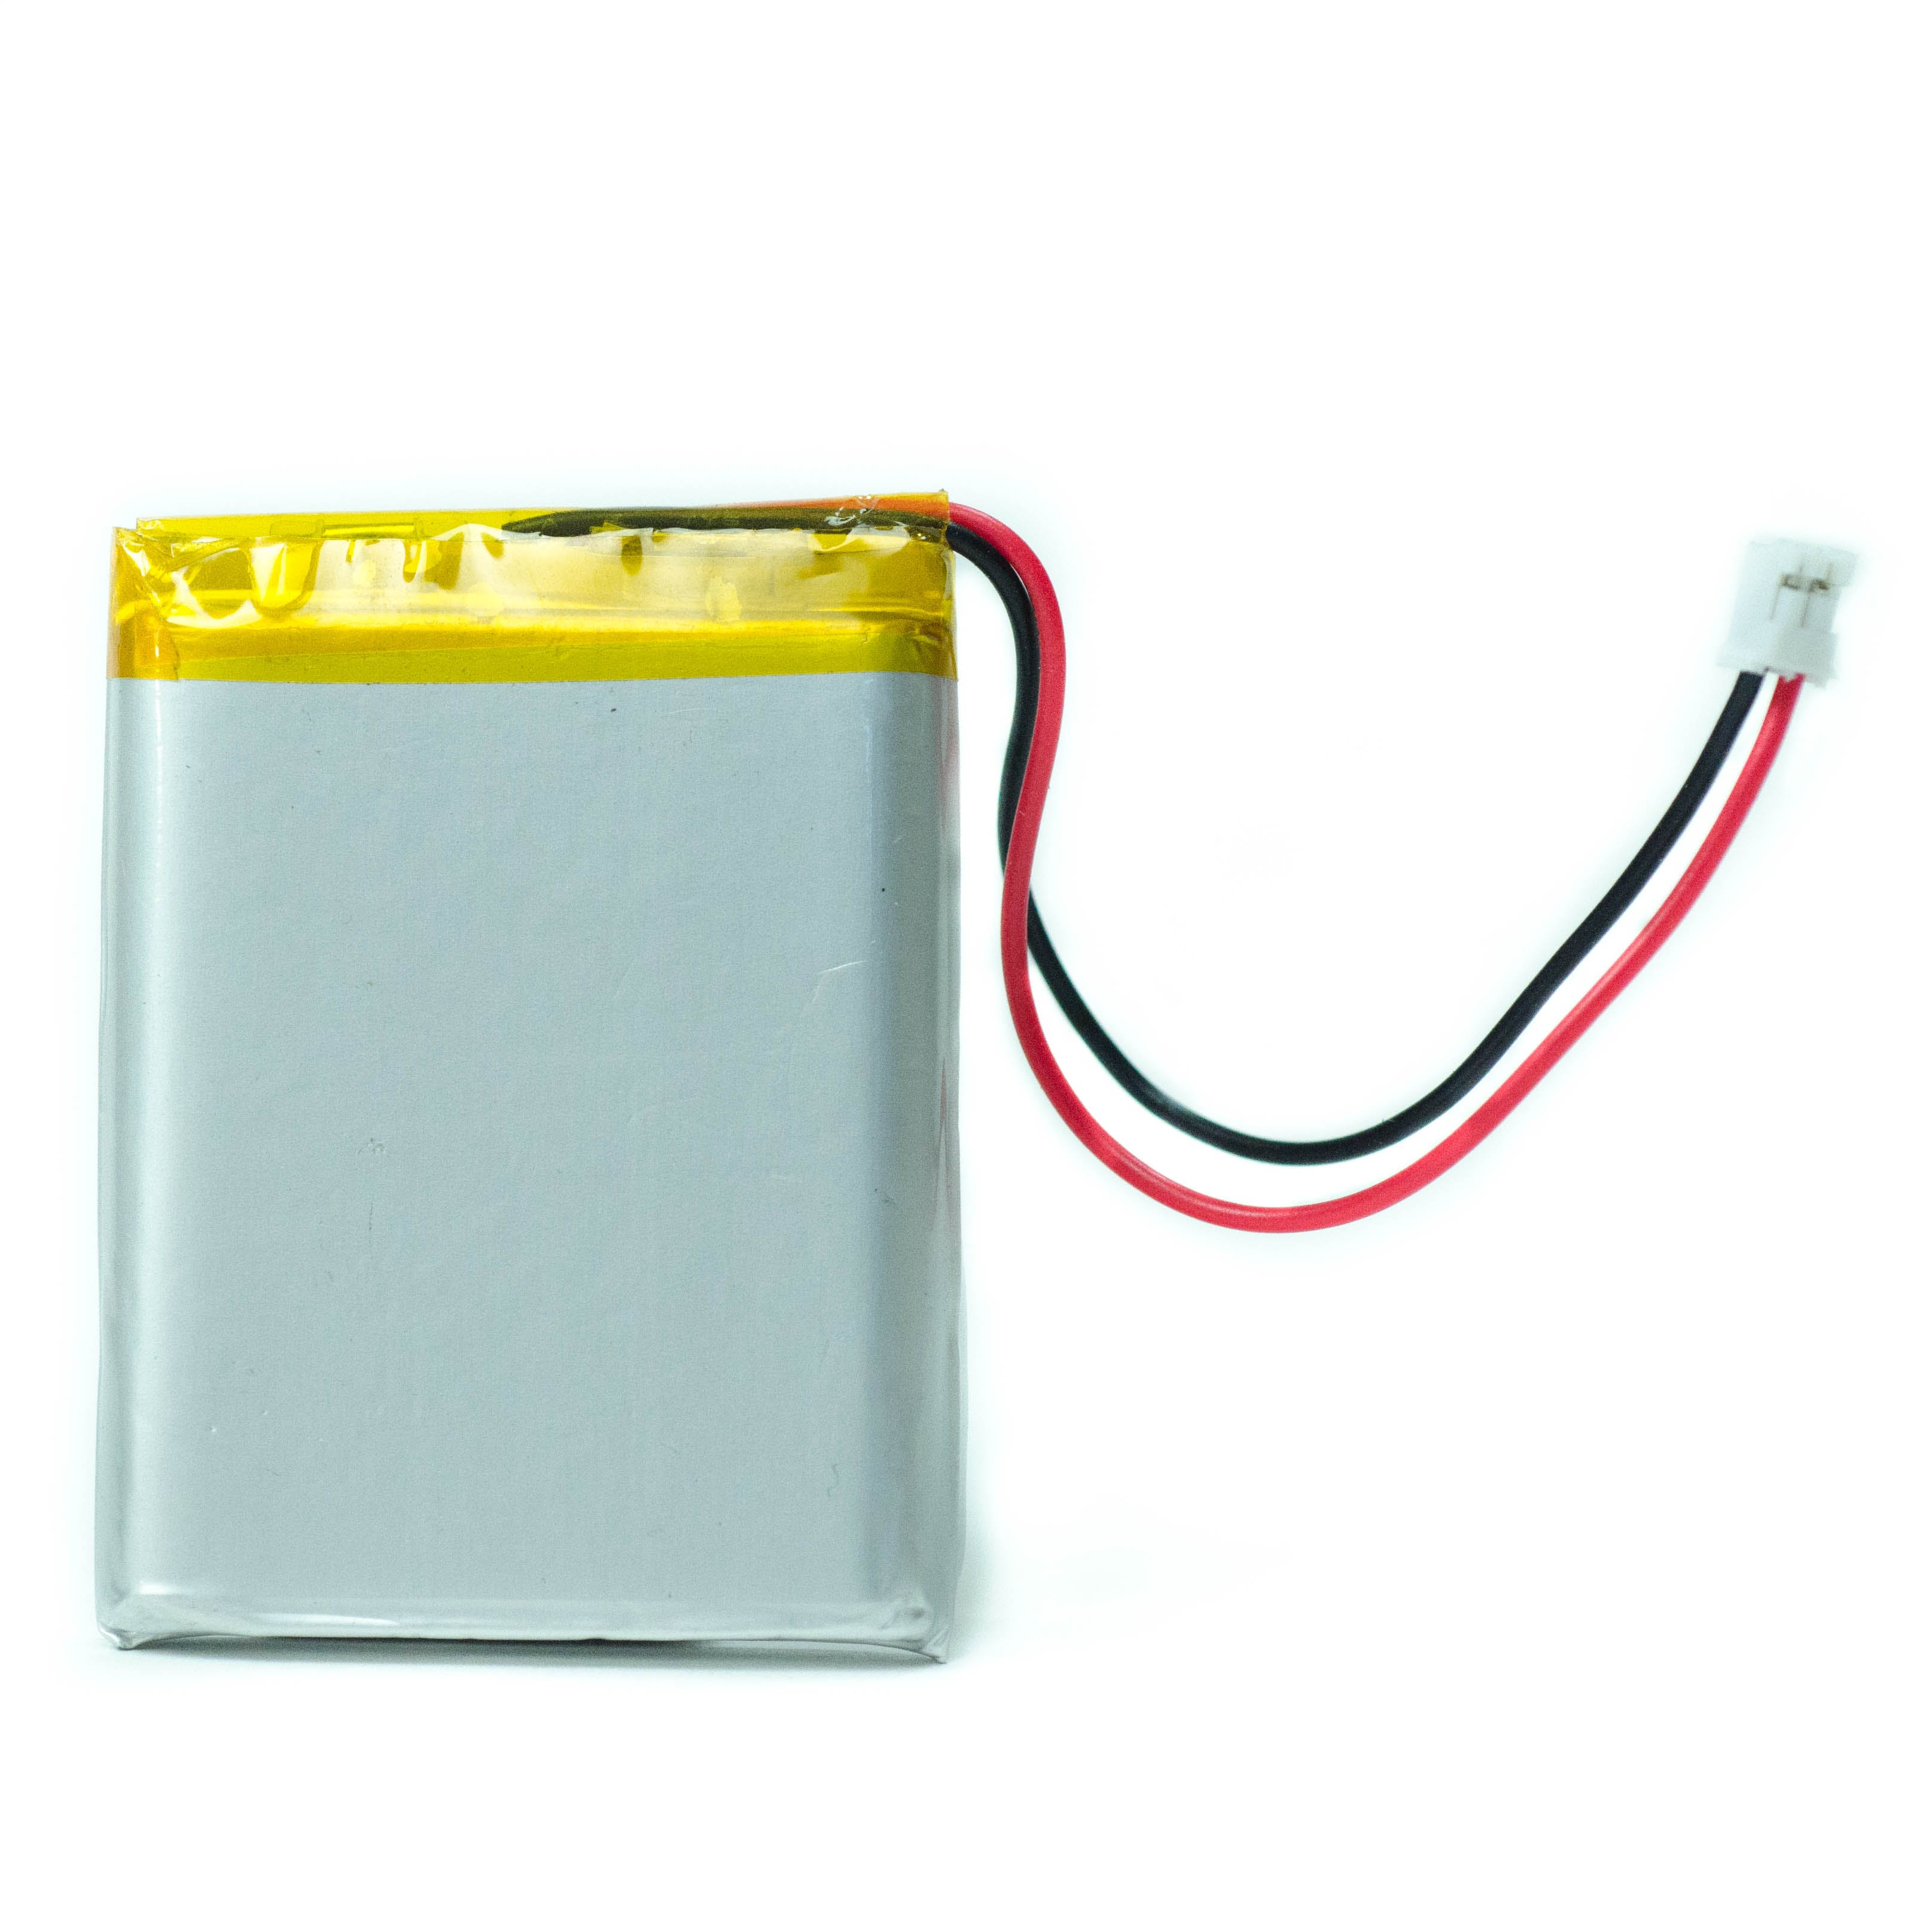 C.H.I.P. Approved 3.7 V LiPo Battery